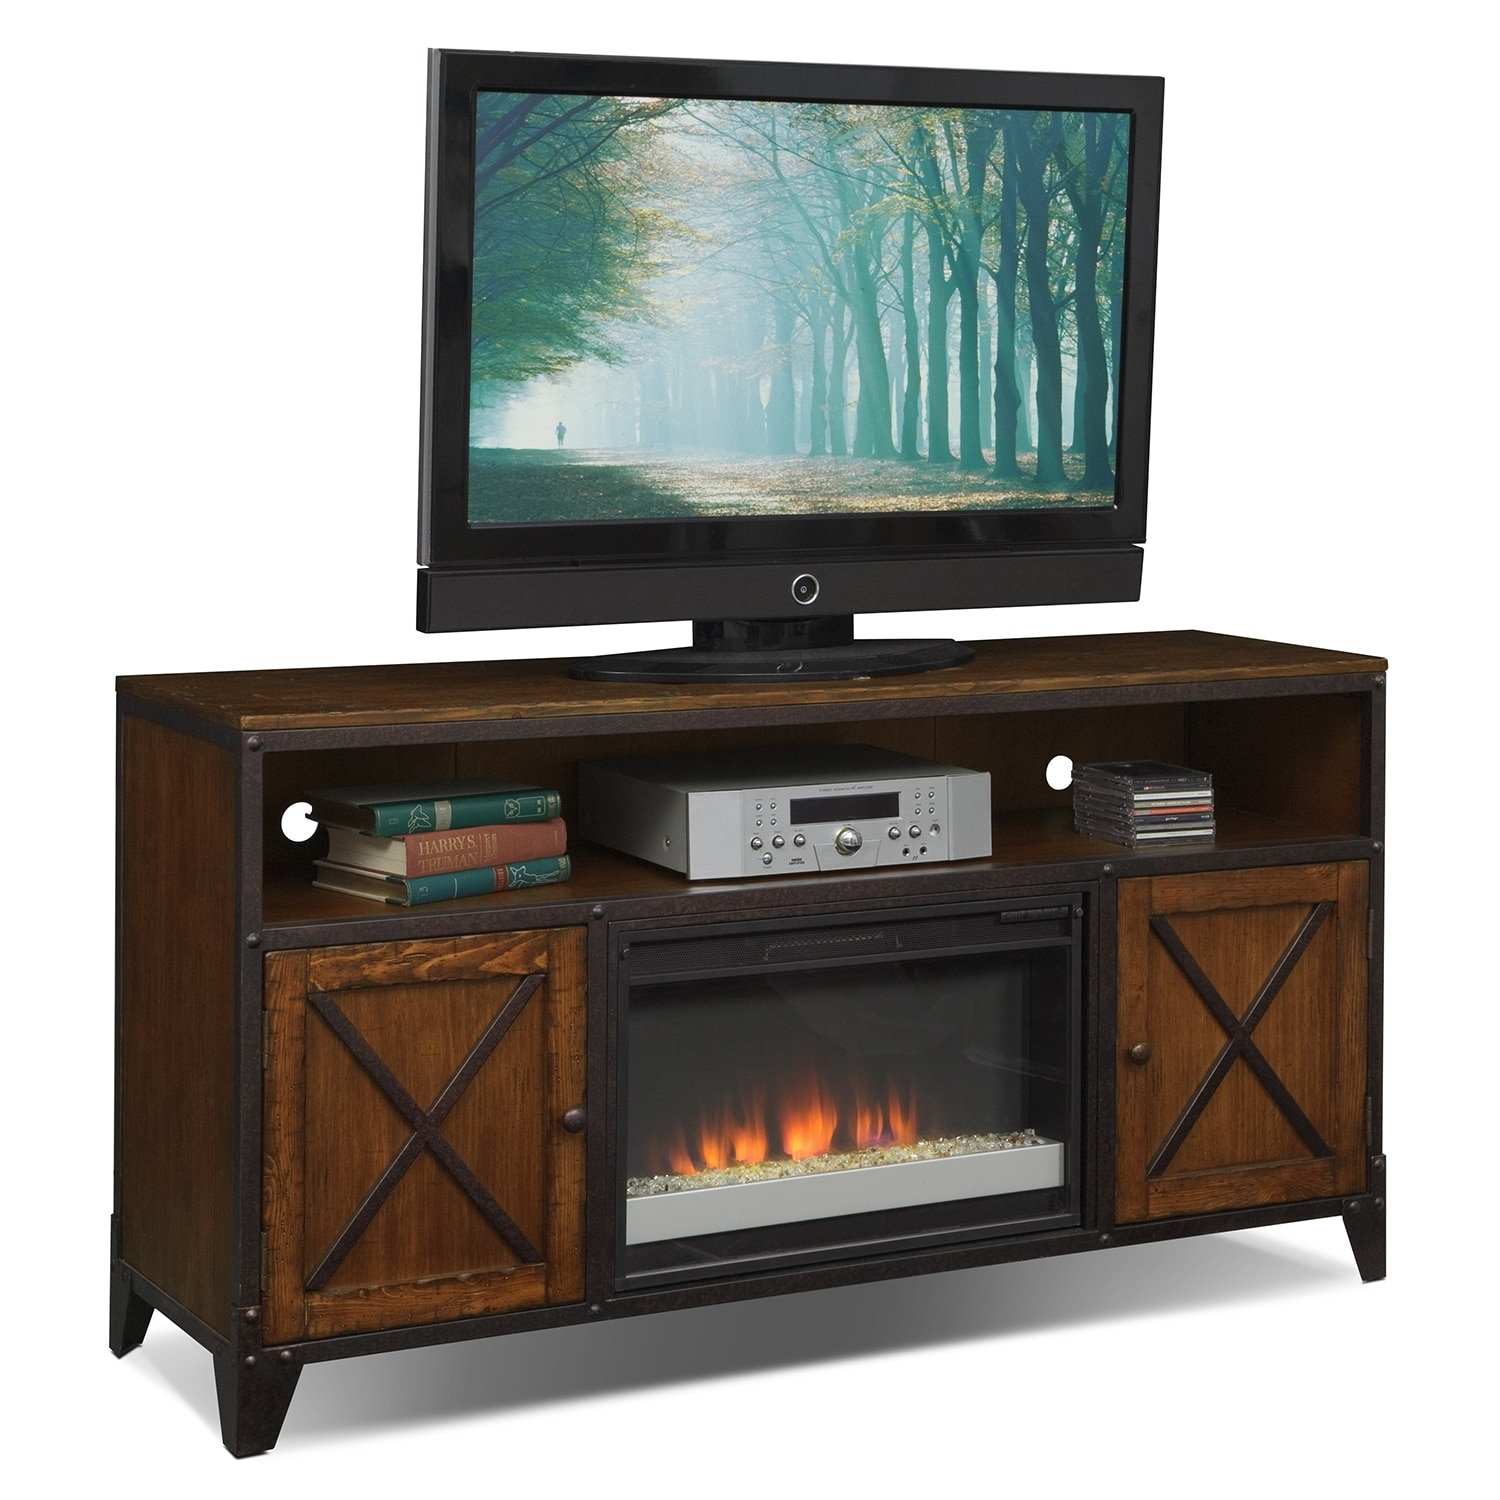 Entertainment Furniture - Shortline Fireplace TV Stand with Contemporary Insert - Distressed Pine